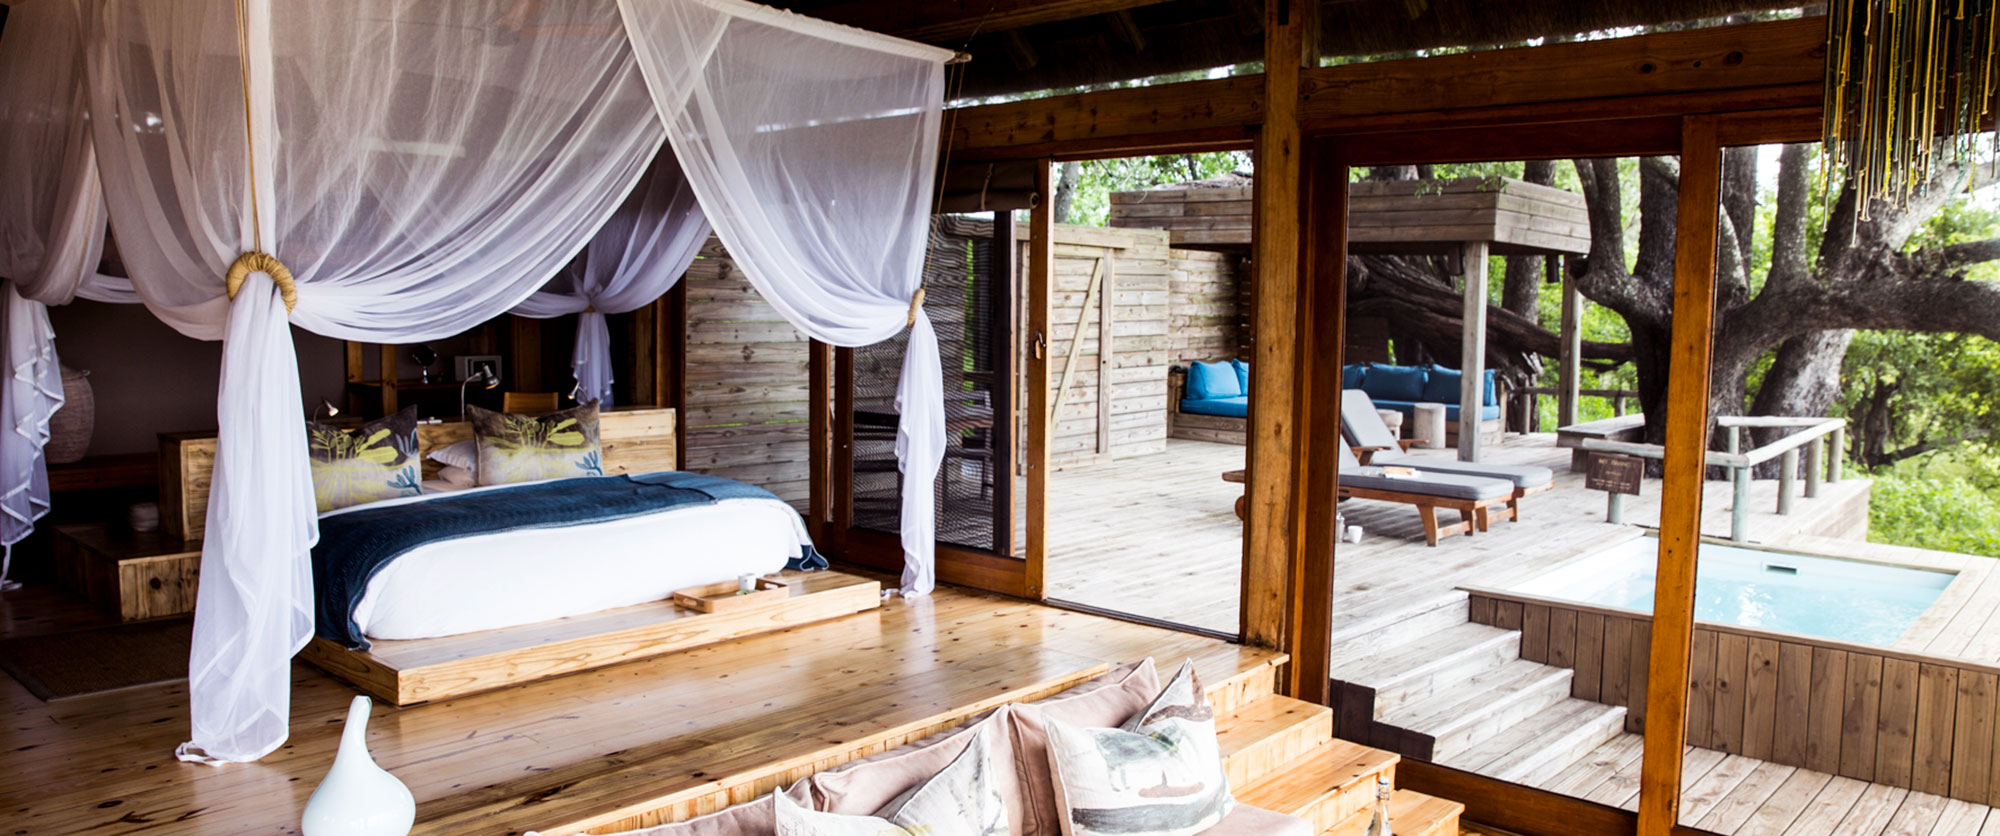 Luxurious suite at Vumbura Camp, Okavango Delta, Botswana